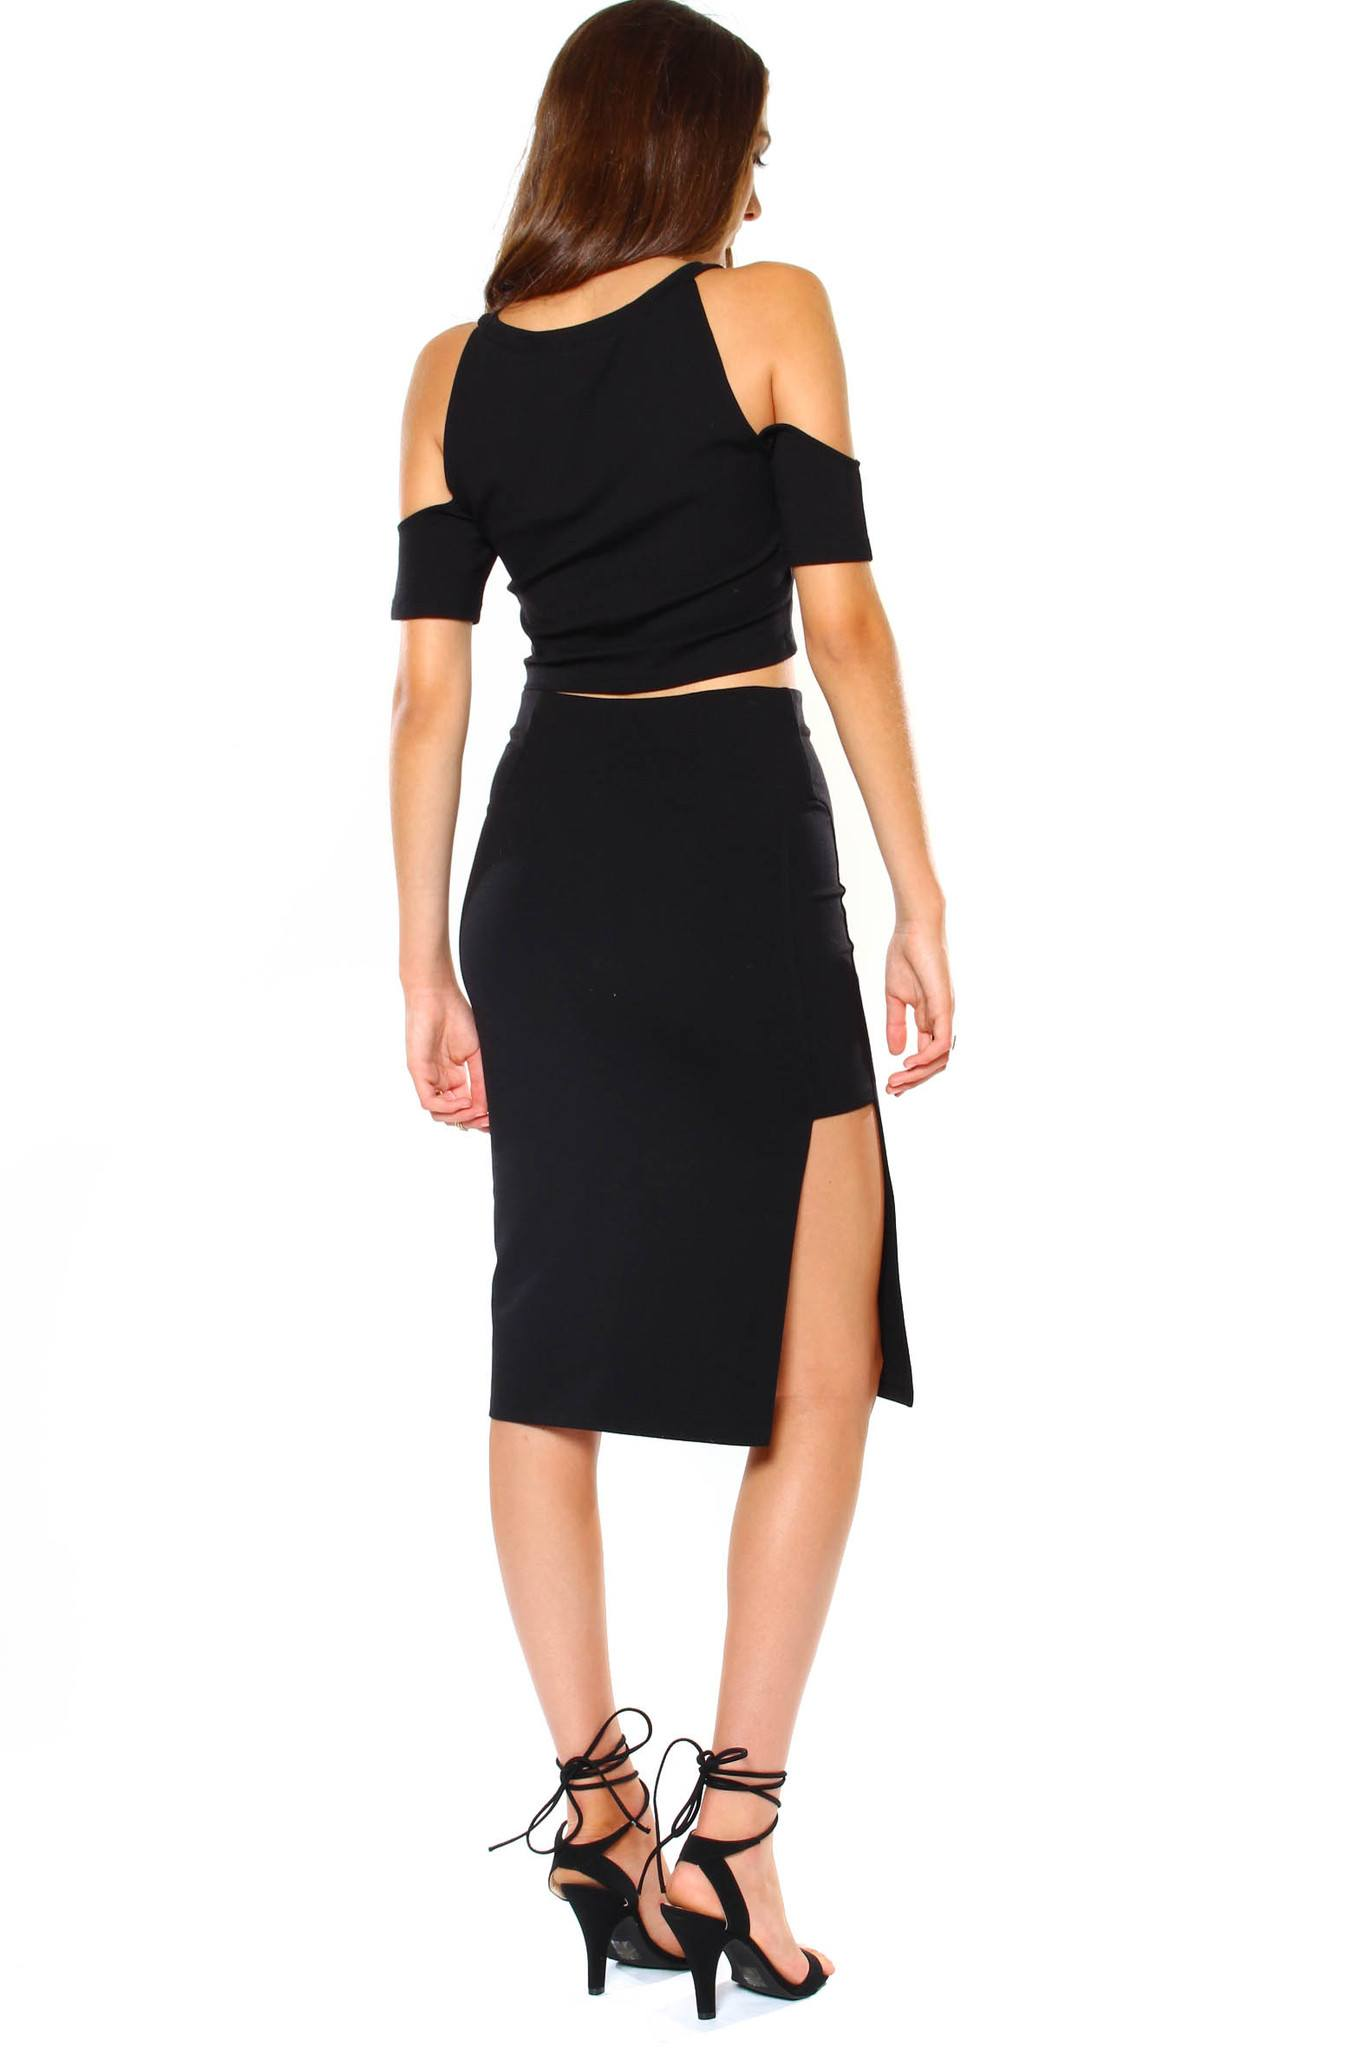 MINKPINK Moon Child Midi Skirt